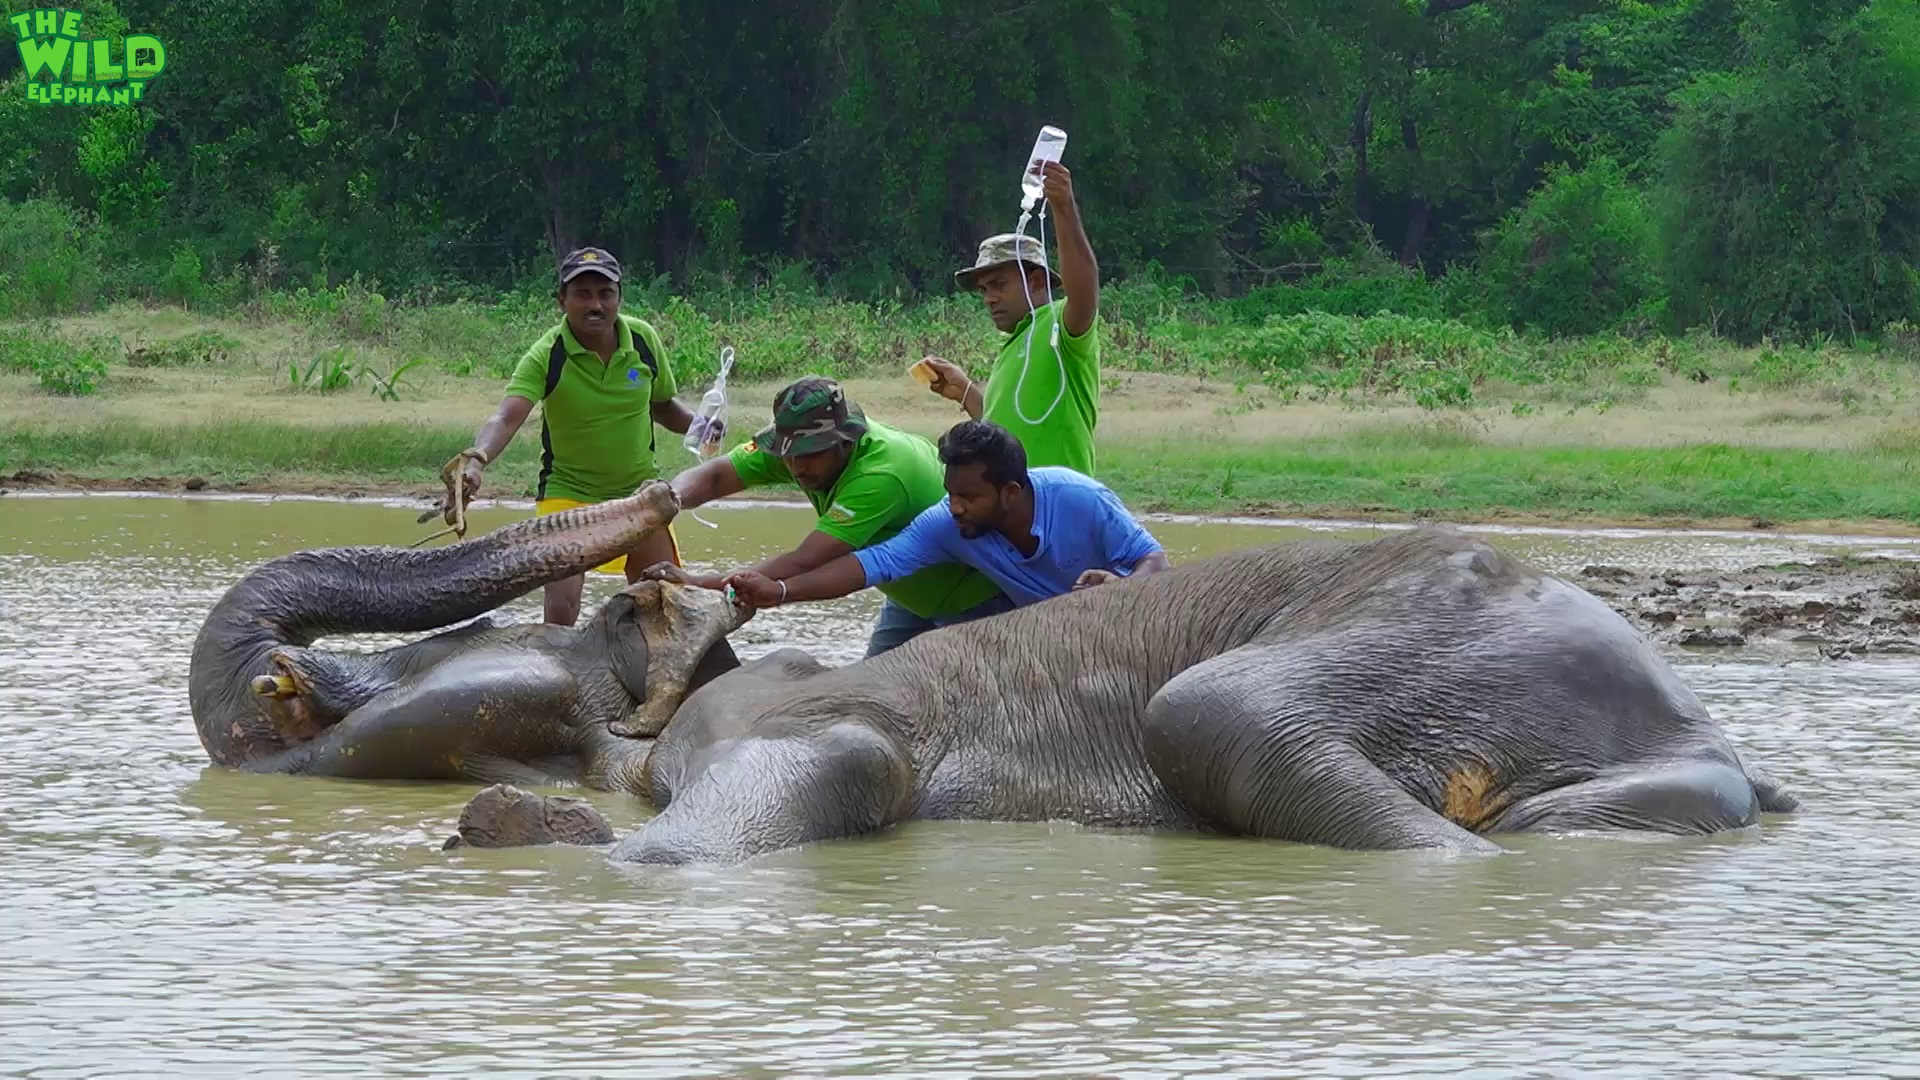 Biggest elephant rescue operation 2018. Part 2 (Elephant shot in the leg) Update